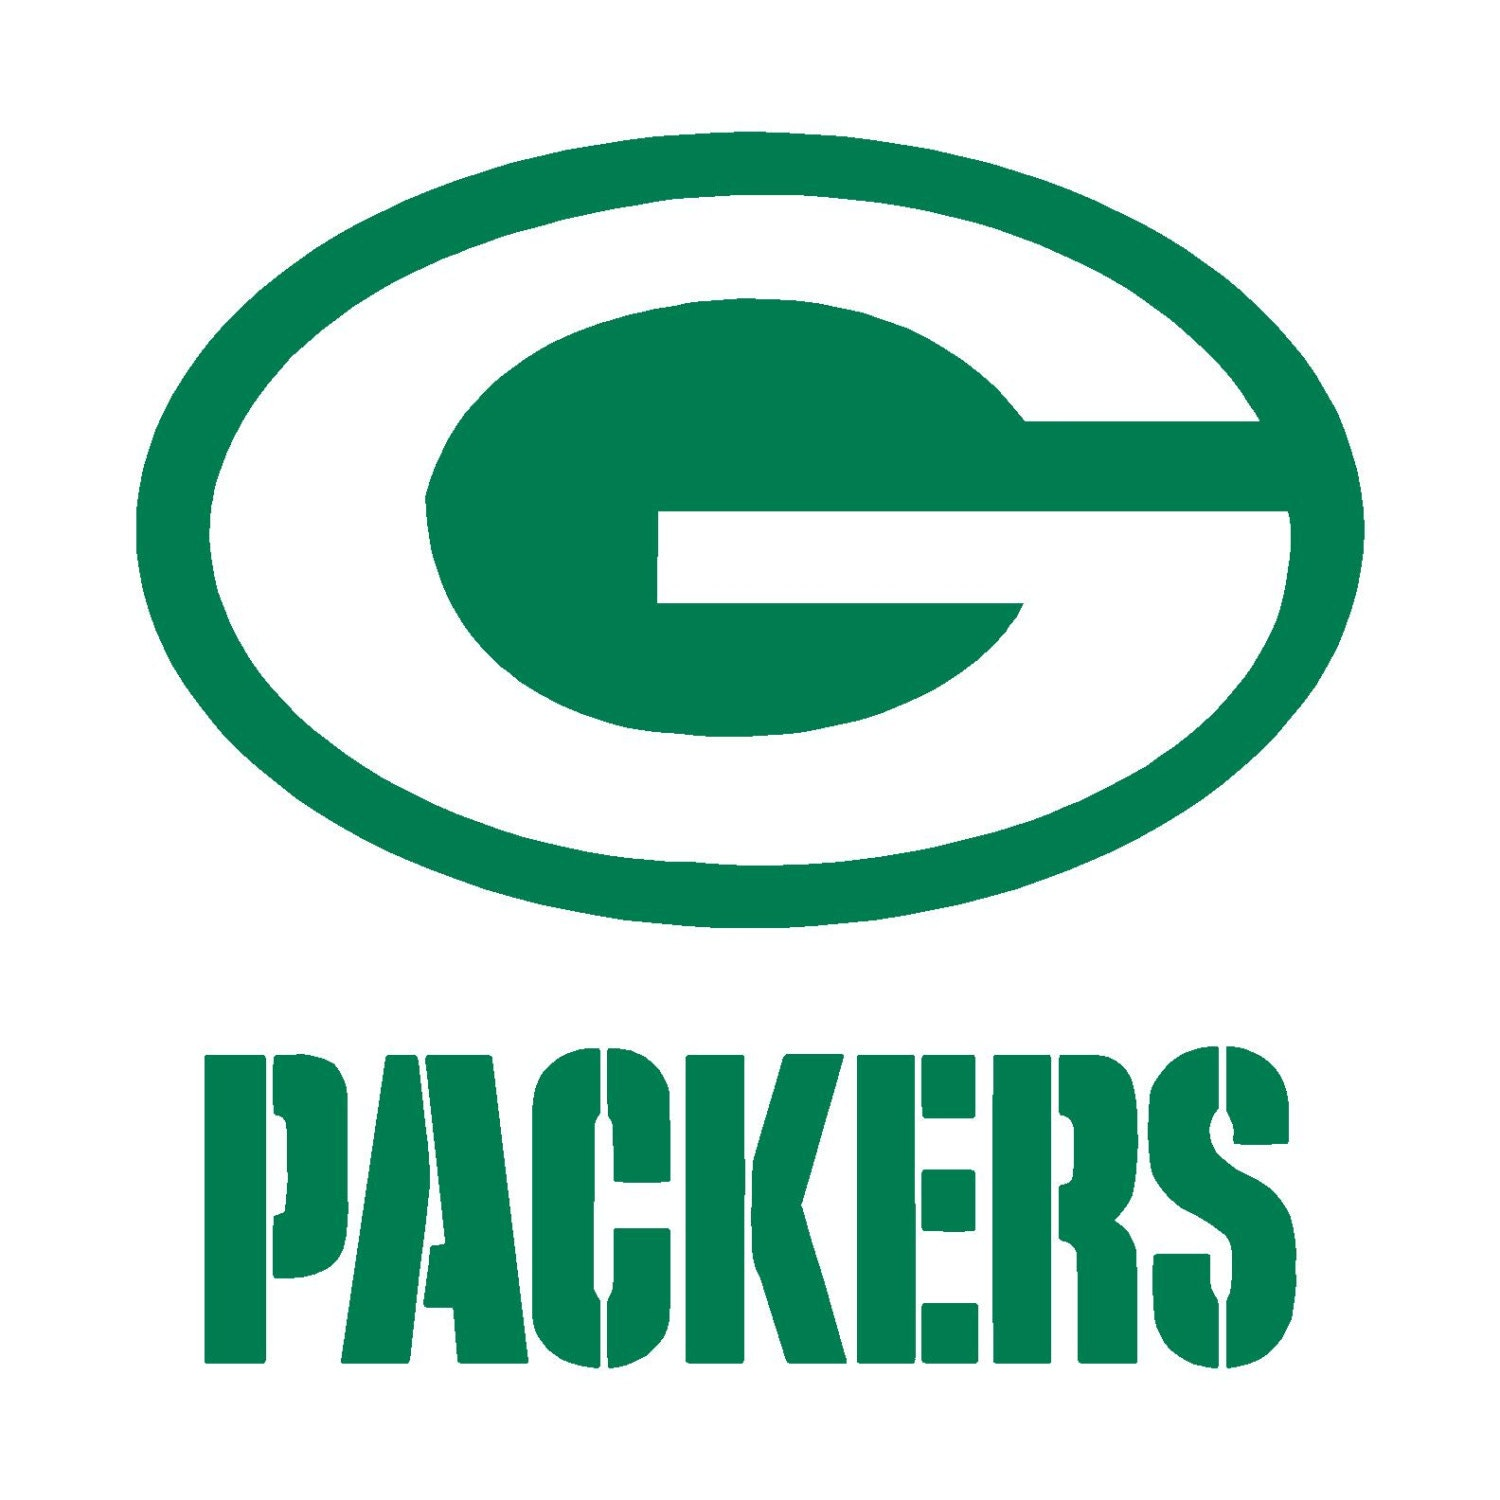 Green Bay Packers Emblem >> Green Bay Packers Cornhole Decals 18